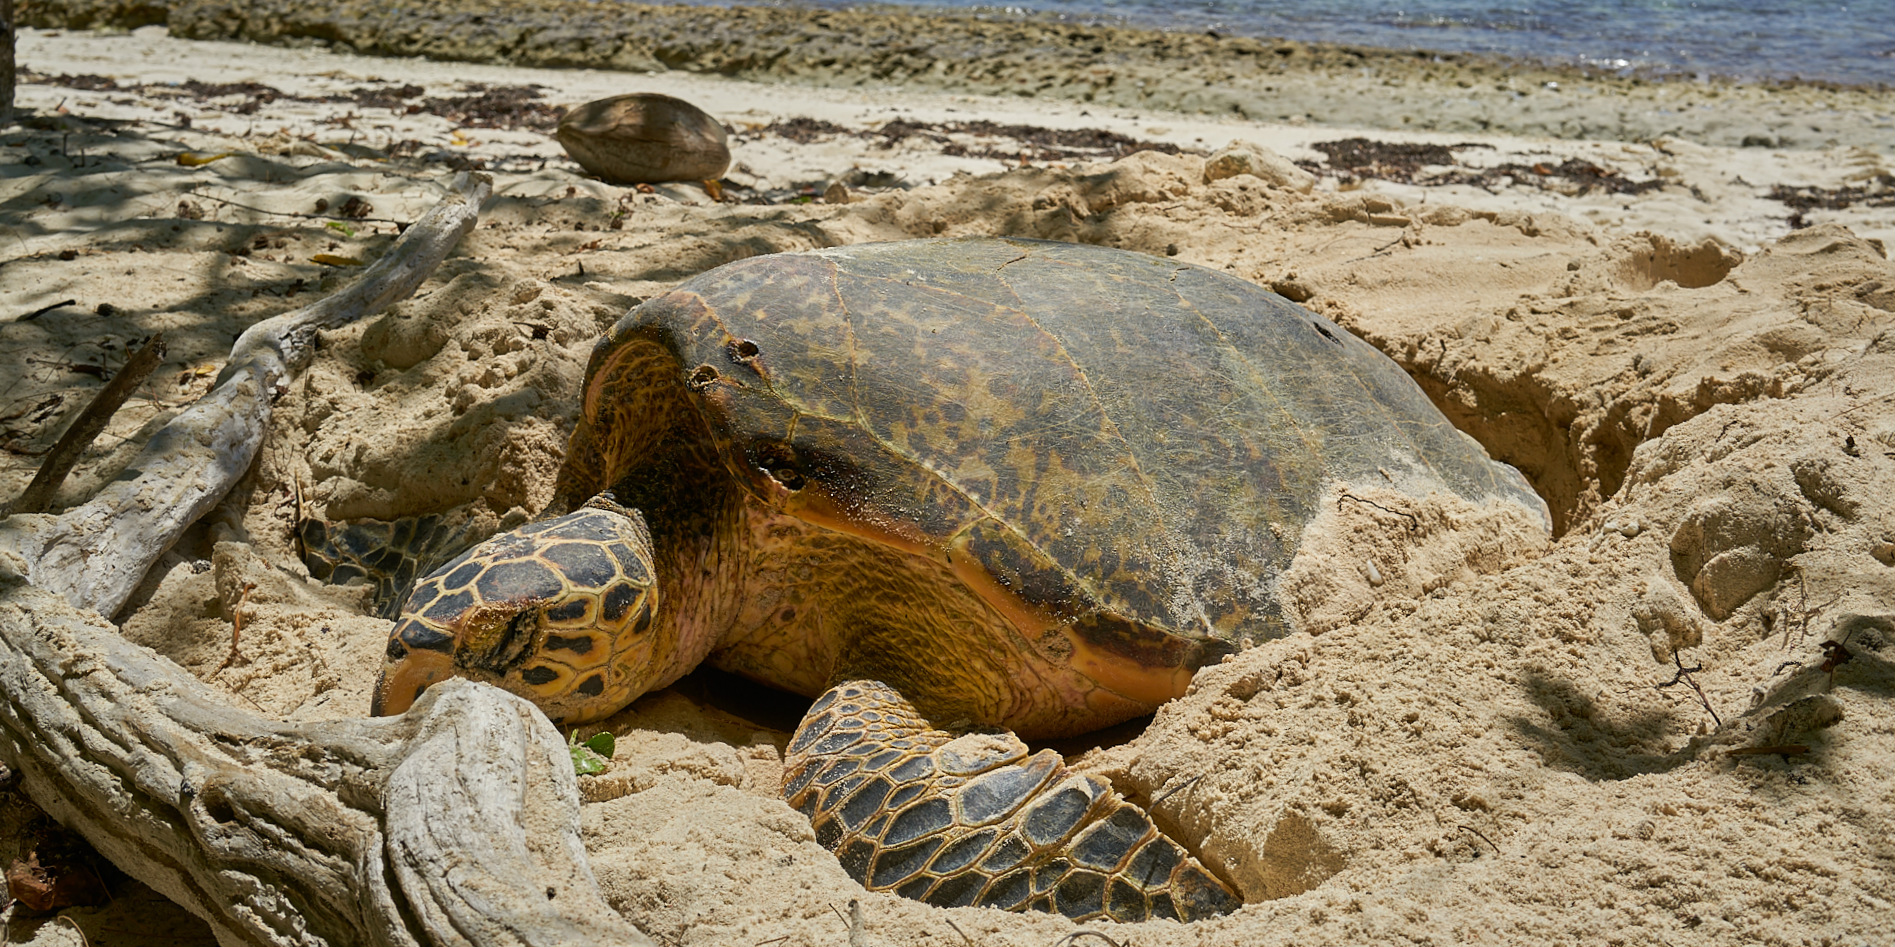 An endangered hawksbill turtle nests on a beach on Curieuse island in Seychelles. GVI participants help to monitor the abundant ecosystem on the island as part of marine conservation efforts.